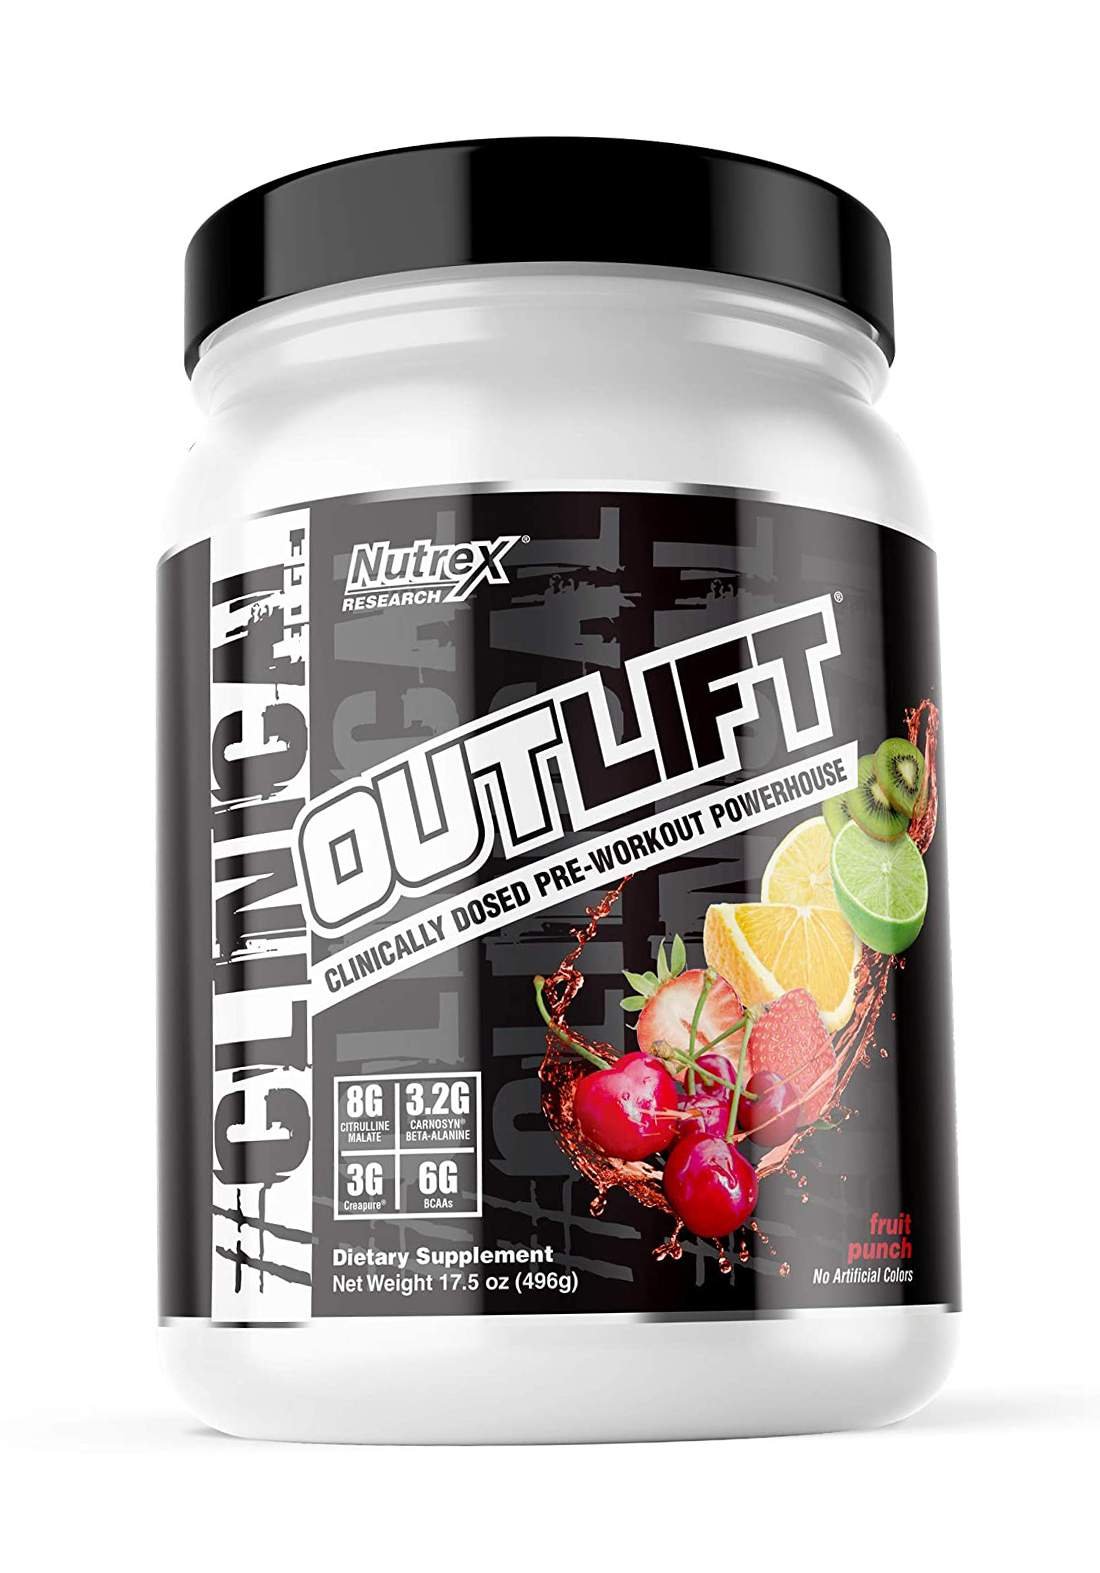 Nutrex Research OutLift Clinical Dosed pre-workout Fruit Panche 10 Servings 498Gm مكمل غذائي